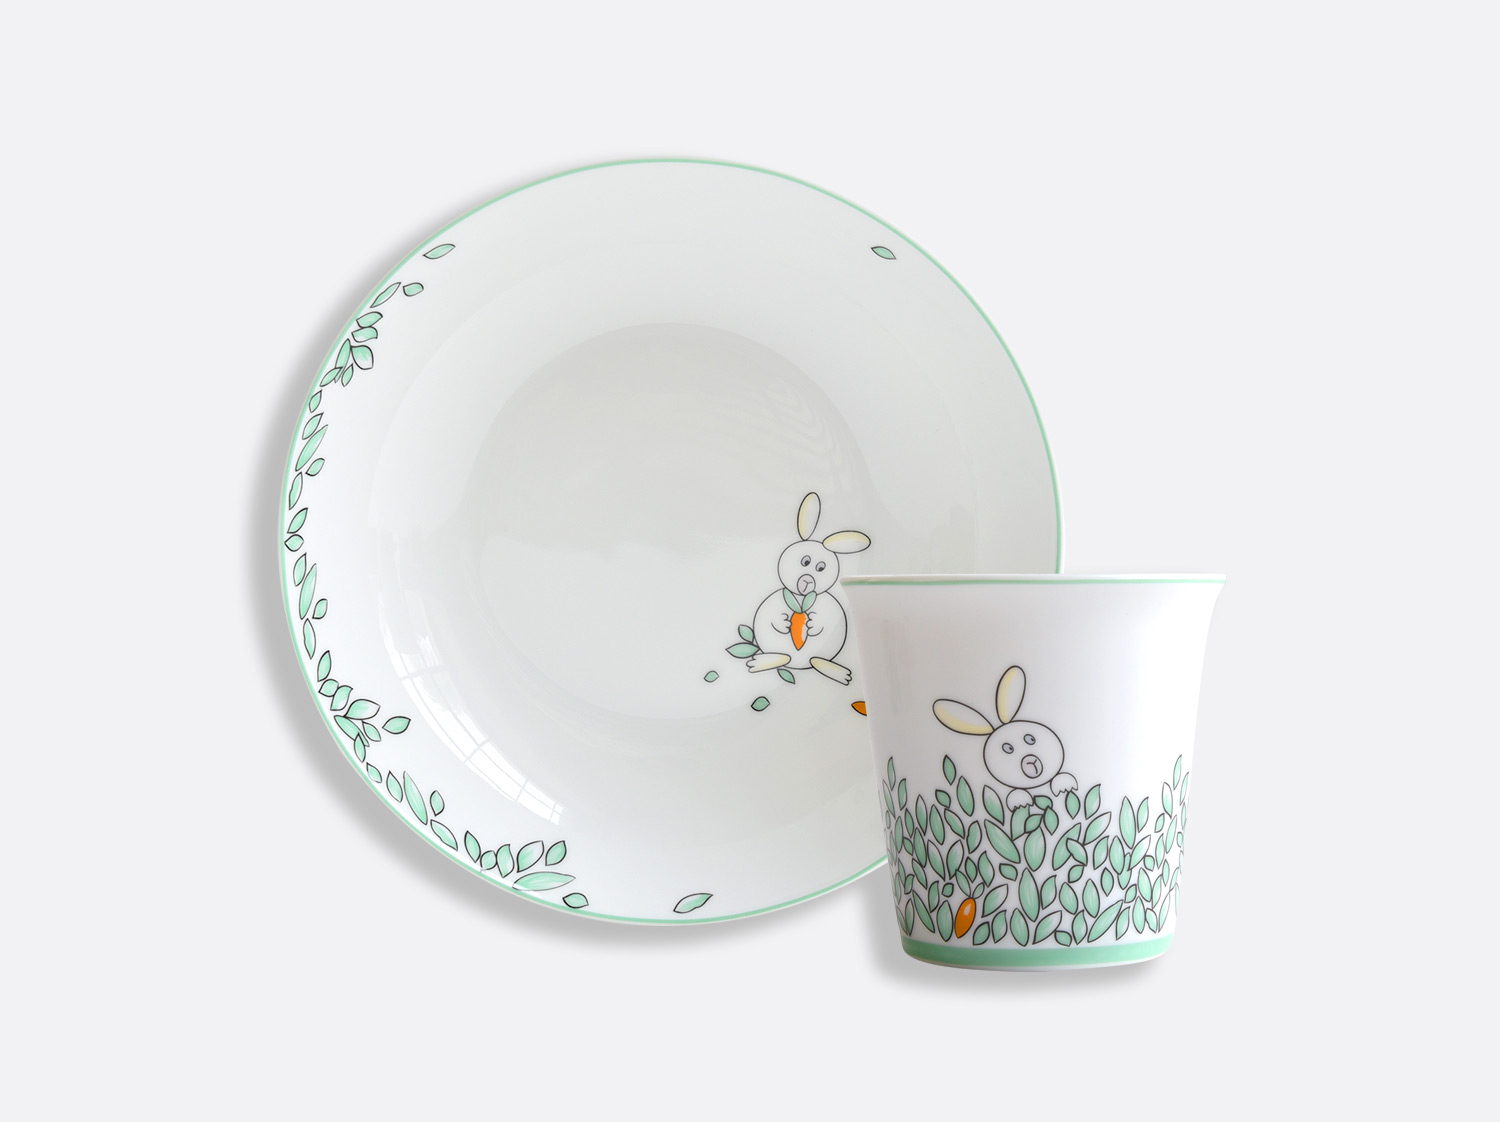 Coffret 1 assiette creuse 19 cm + timbale en porcelaine de la collection PETIT BOULINGRIN Bernardaud